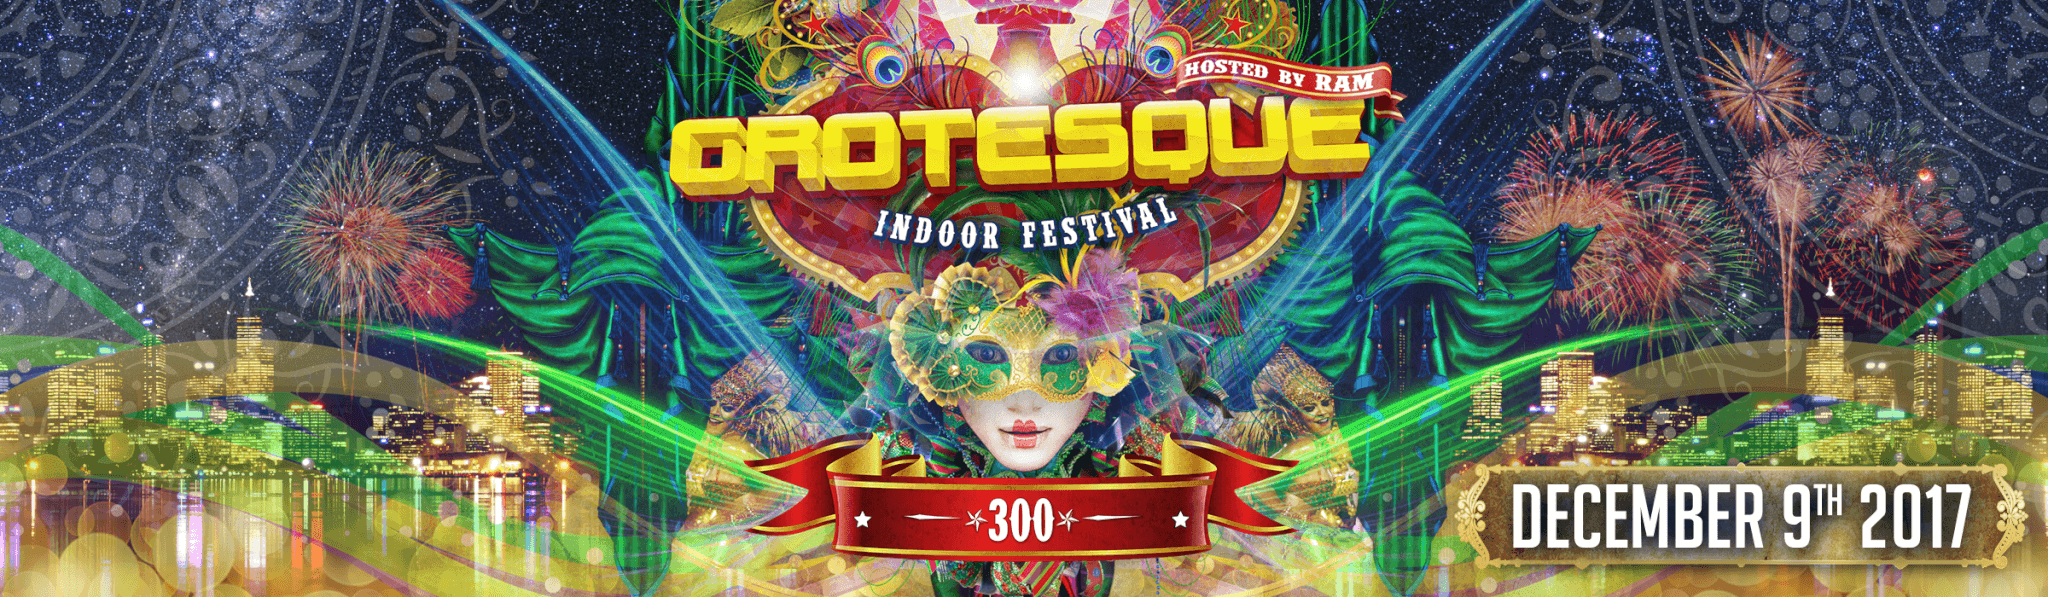 PT Events presents Grotesque Indoor Festival 300 banner